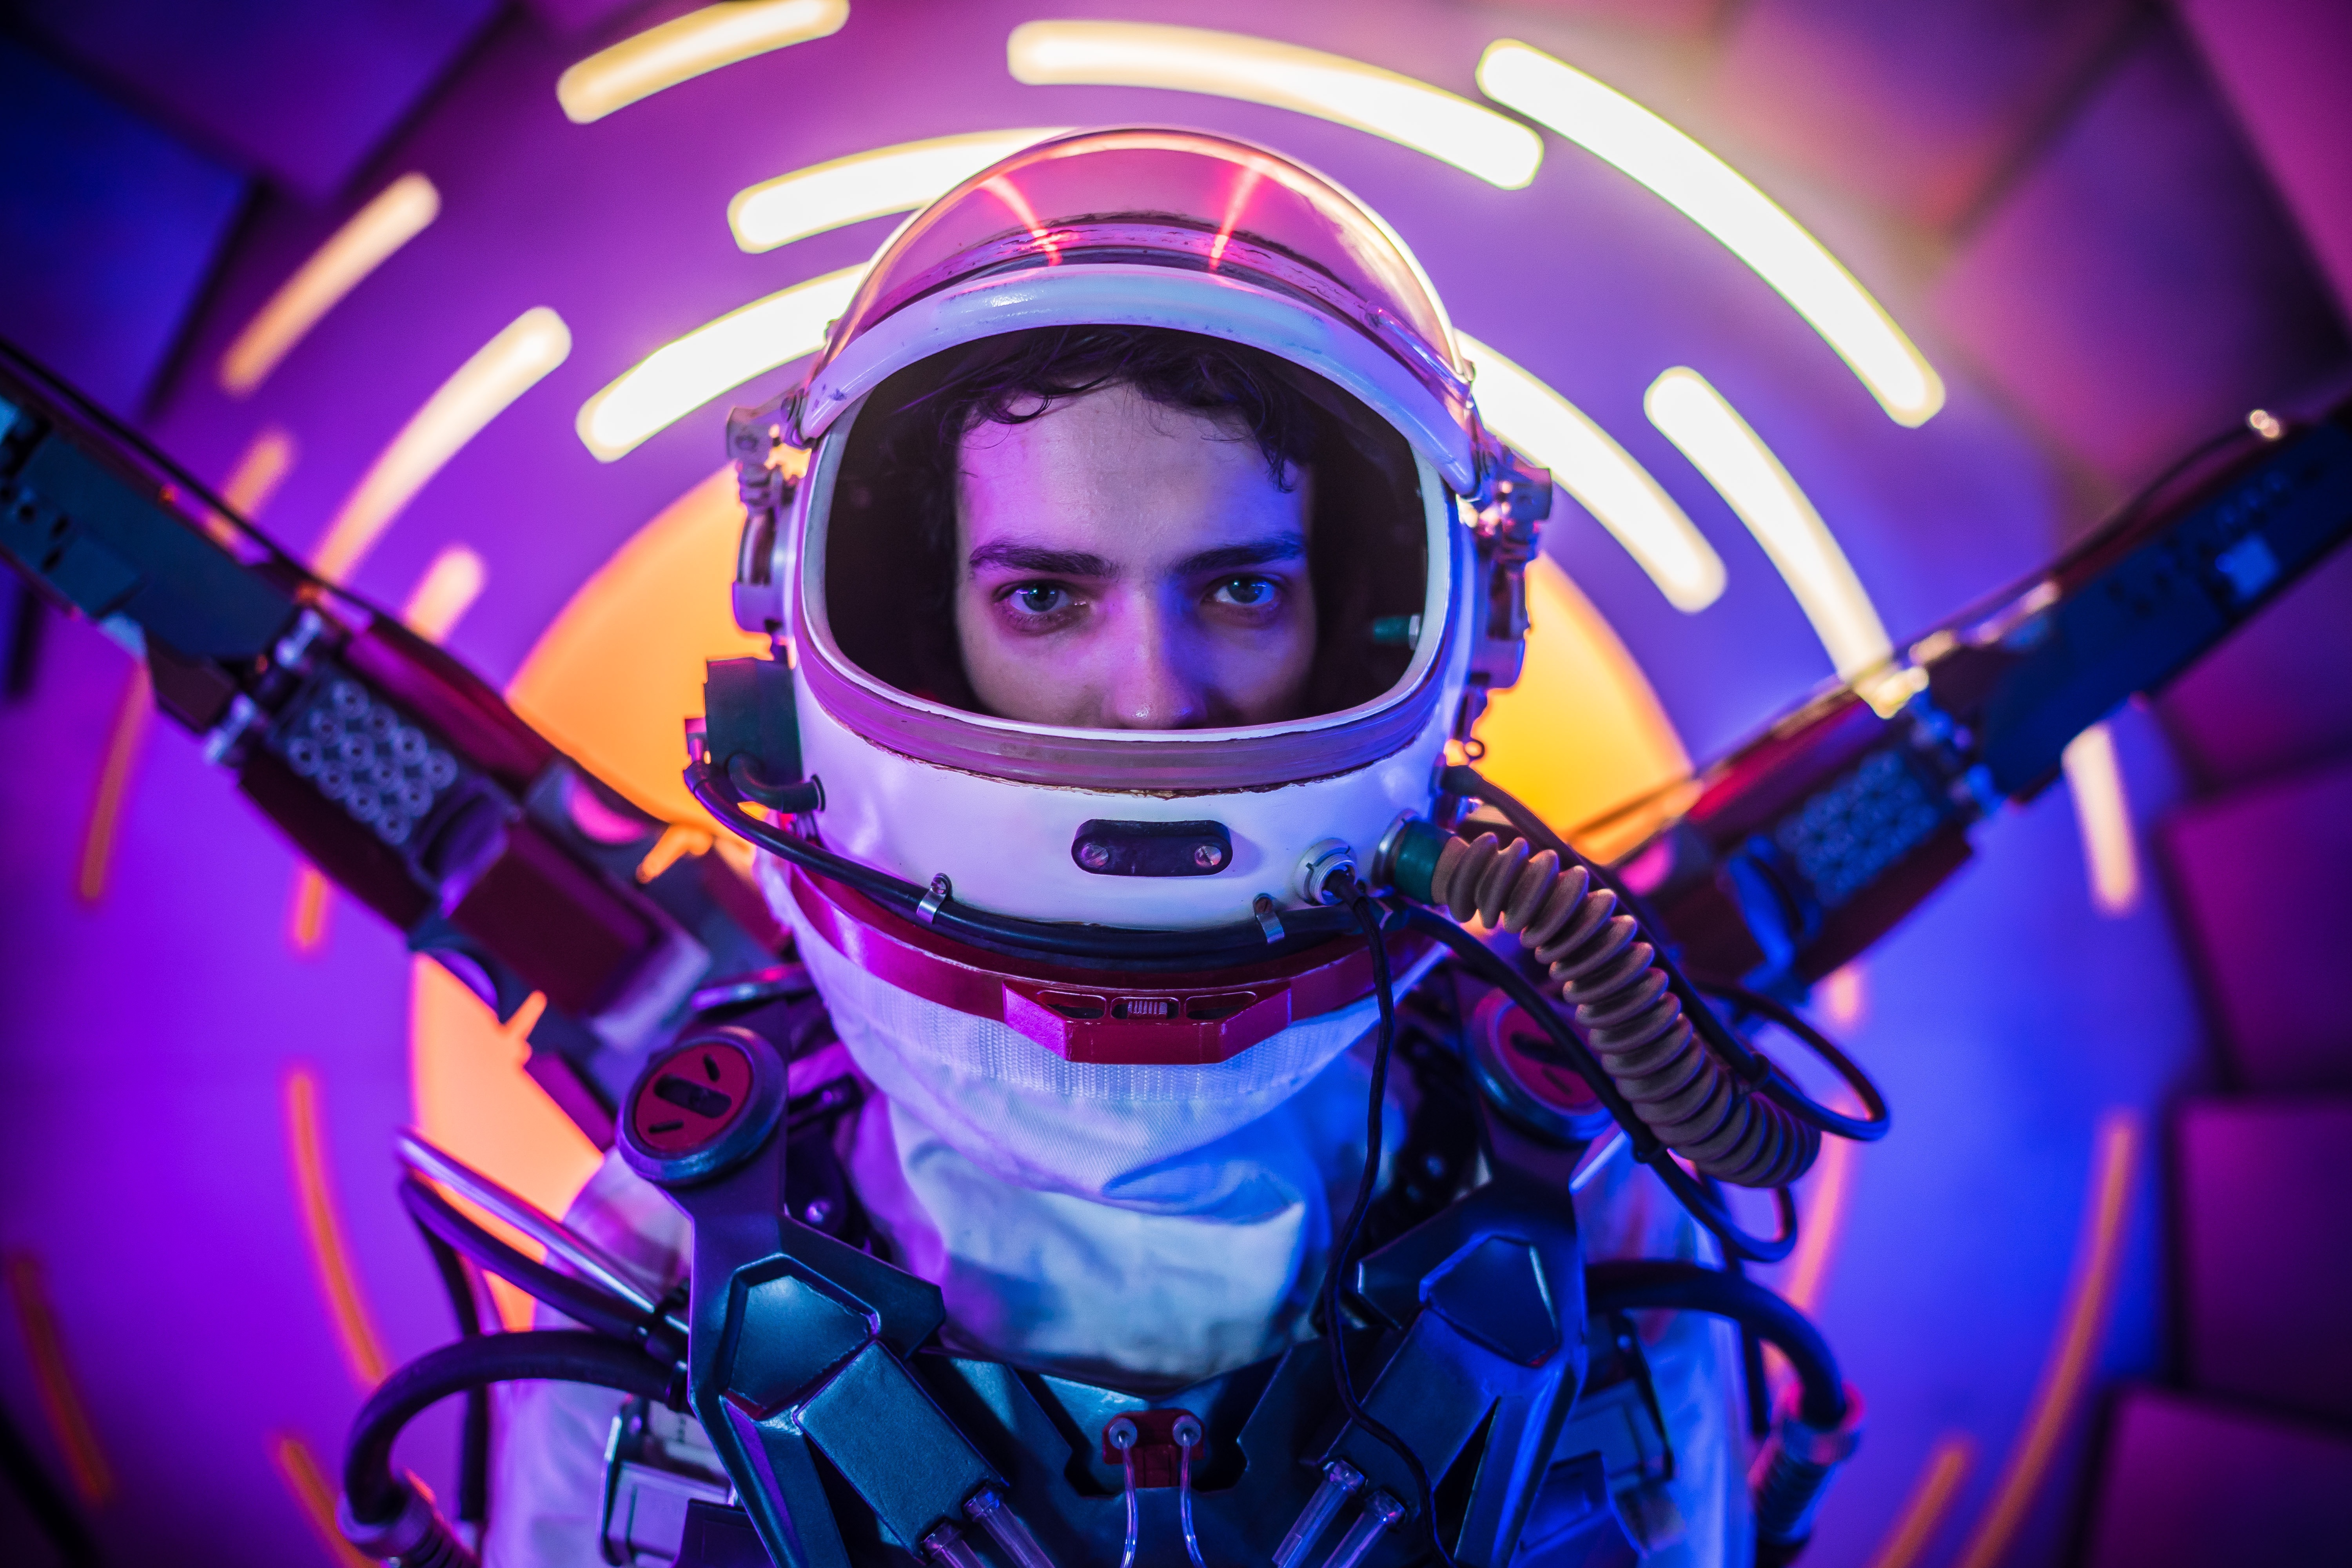 Kodi Smit - McP hee as Ethan Whyte in the sci - fi thriller, 2067 , an RLJ E Films release. Photo courtesy of RLJ E Films